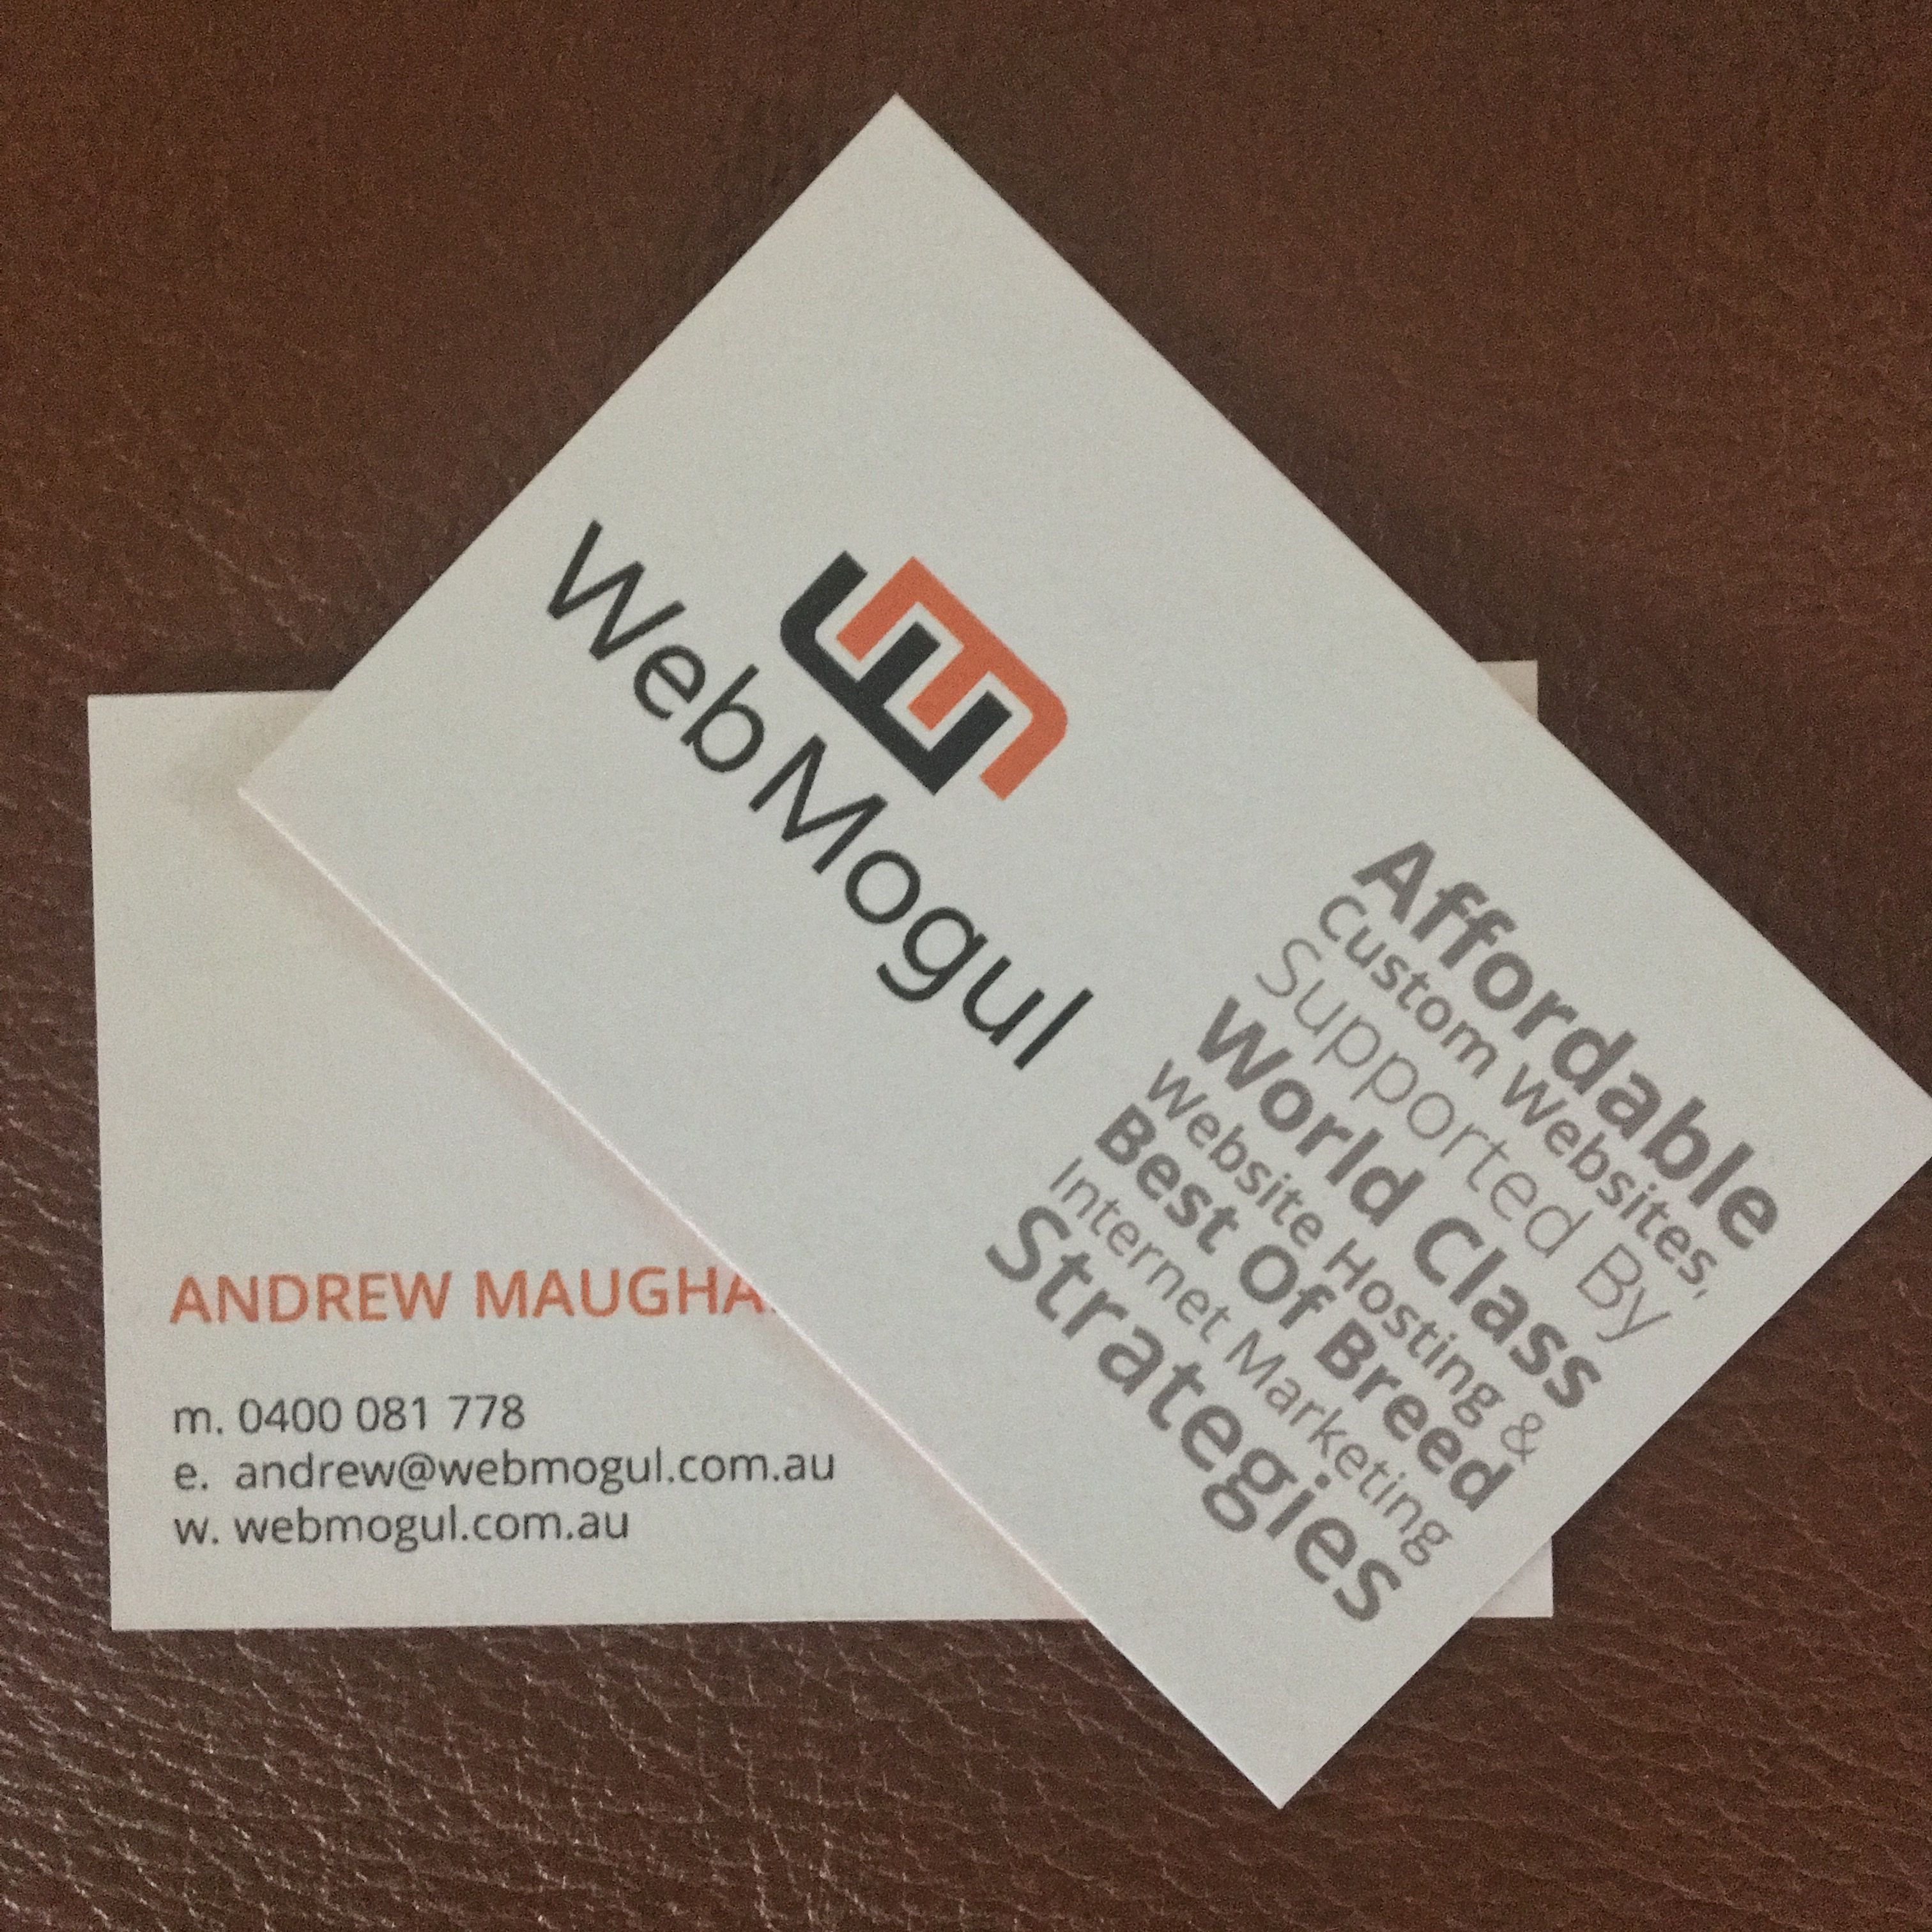 Andrew maughan web mogul